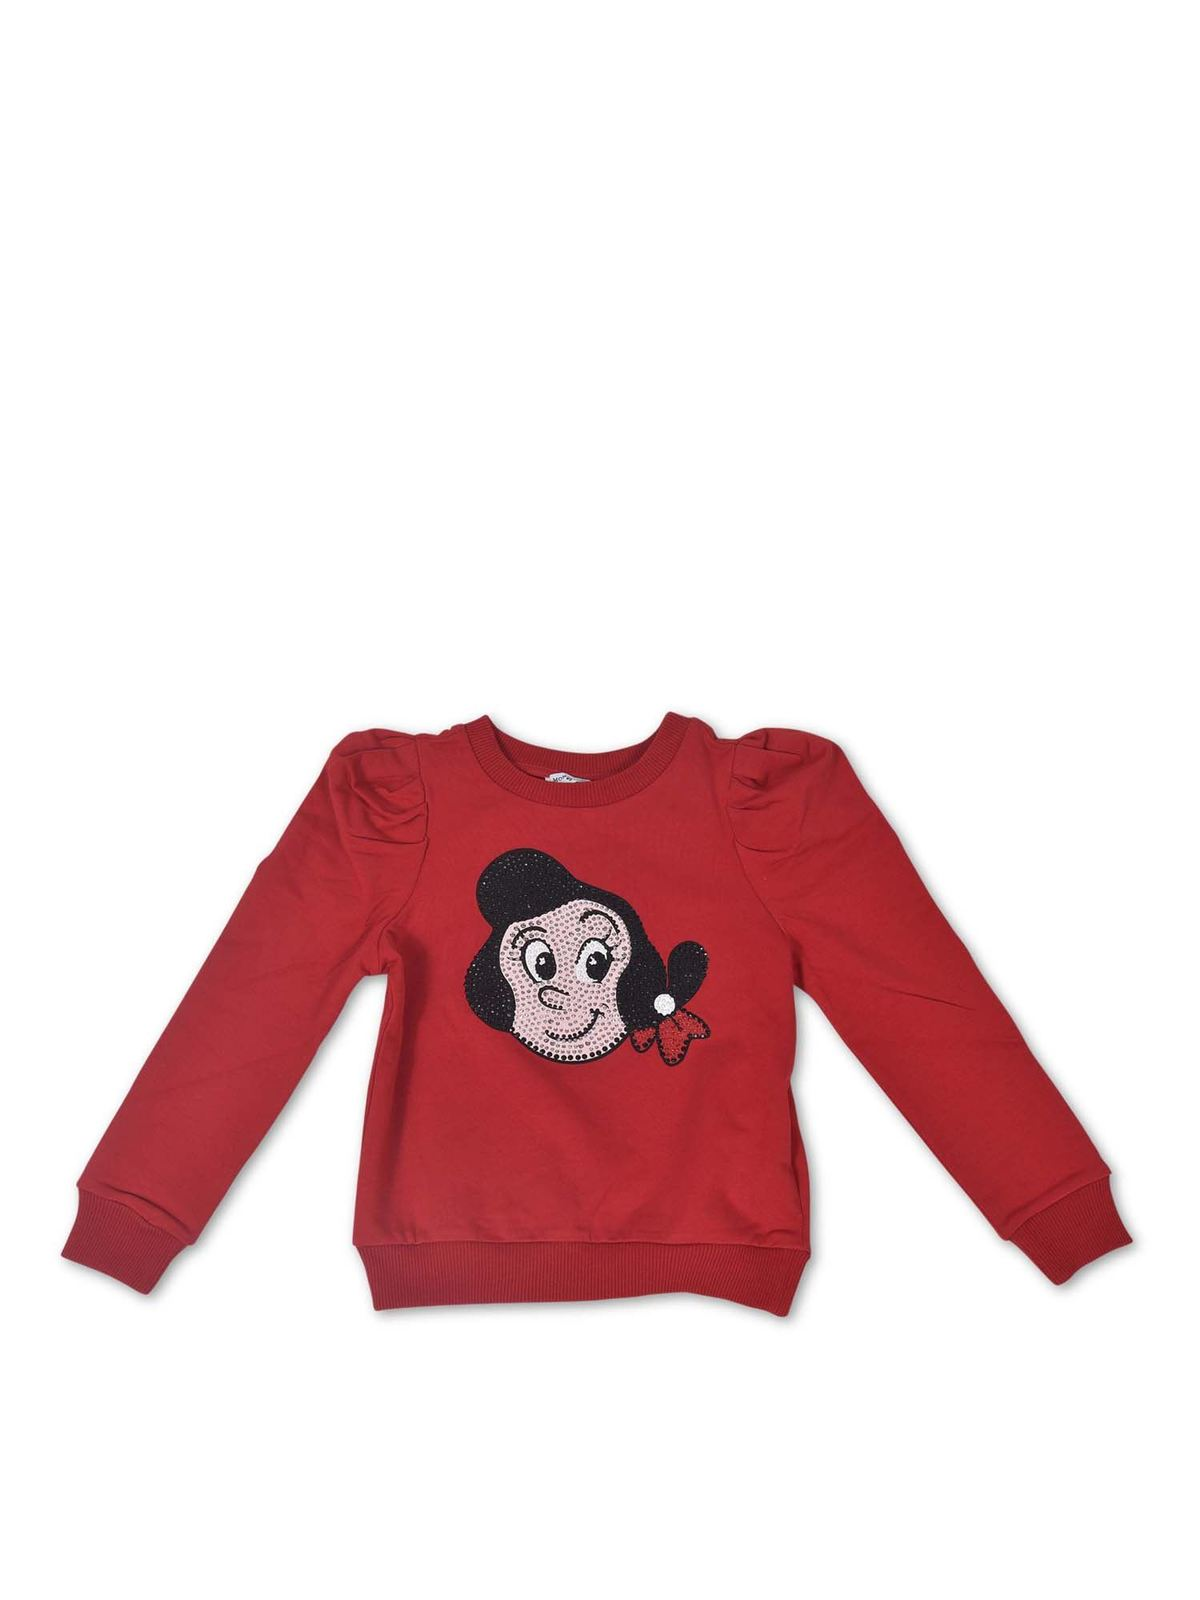 Monnalisa Cottons OLIVIA SWEATSHIRT IN RED